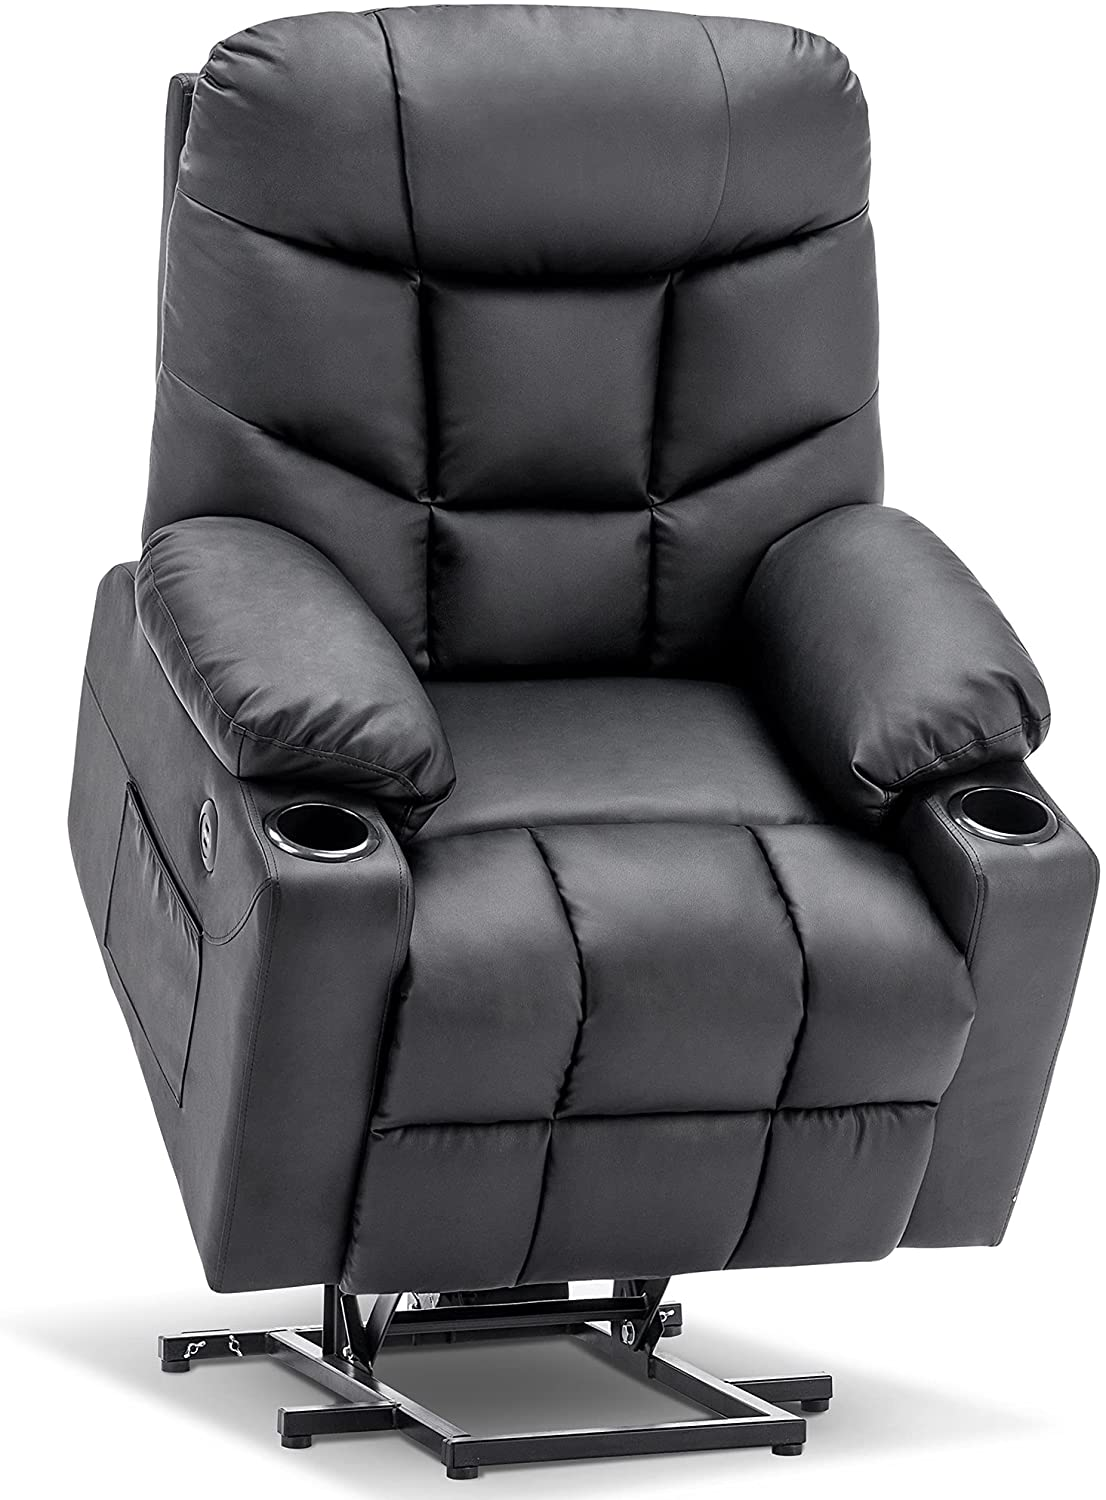 Mcombo Electric Power Lift Special sale item Recliner Chair for Free shipping Elderly 3 Sofa Po